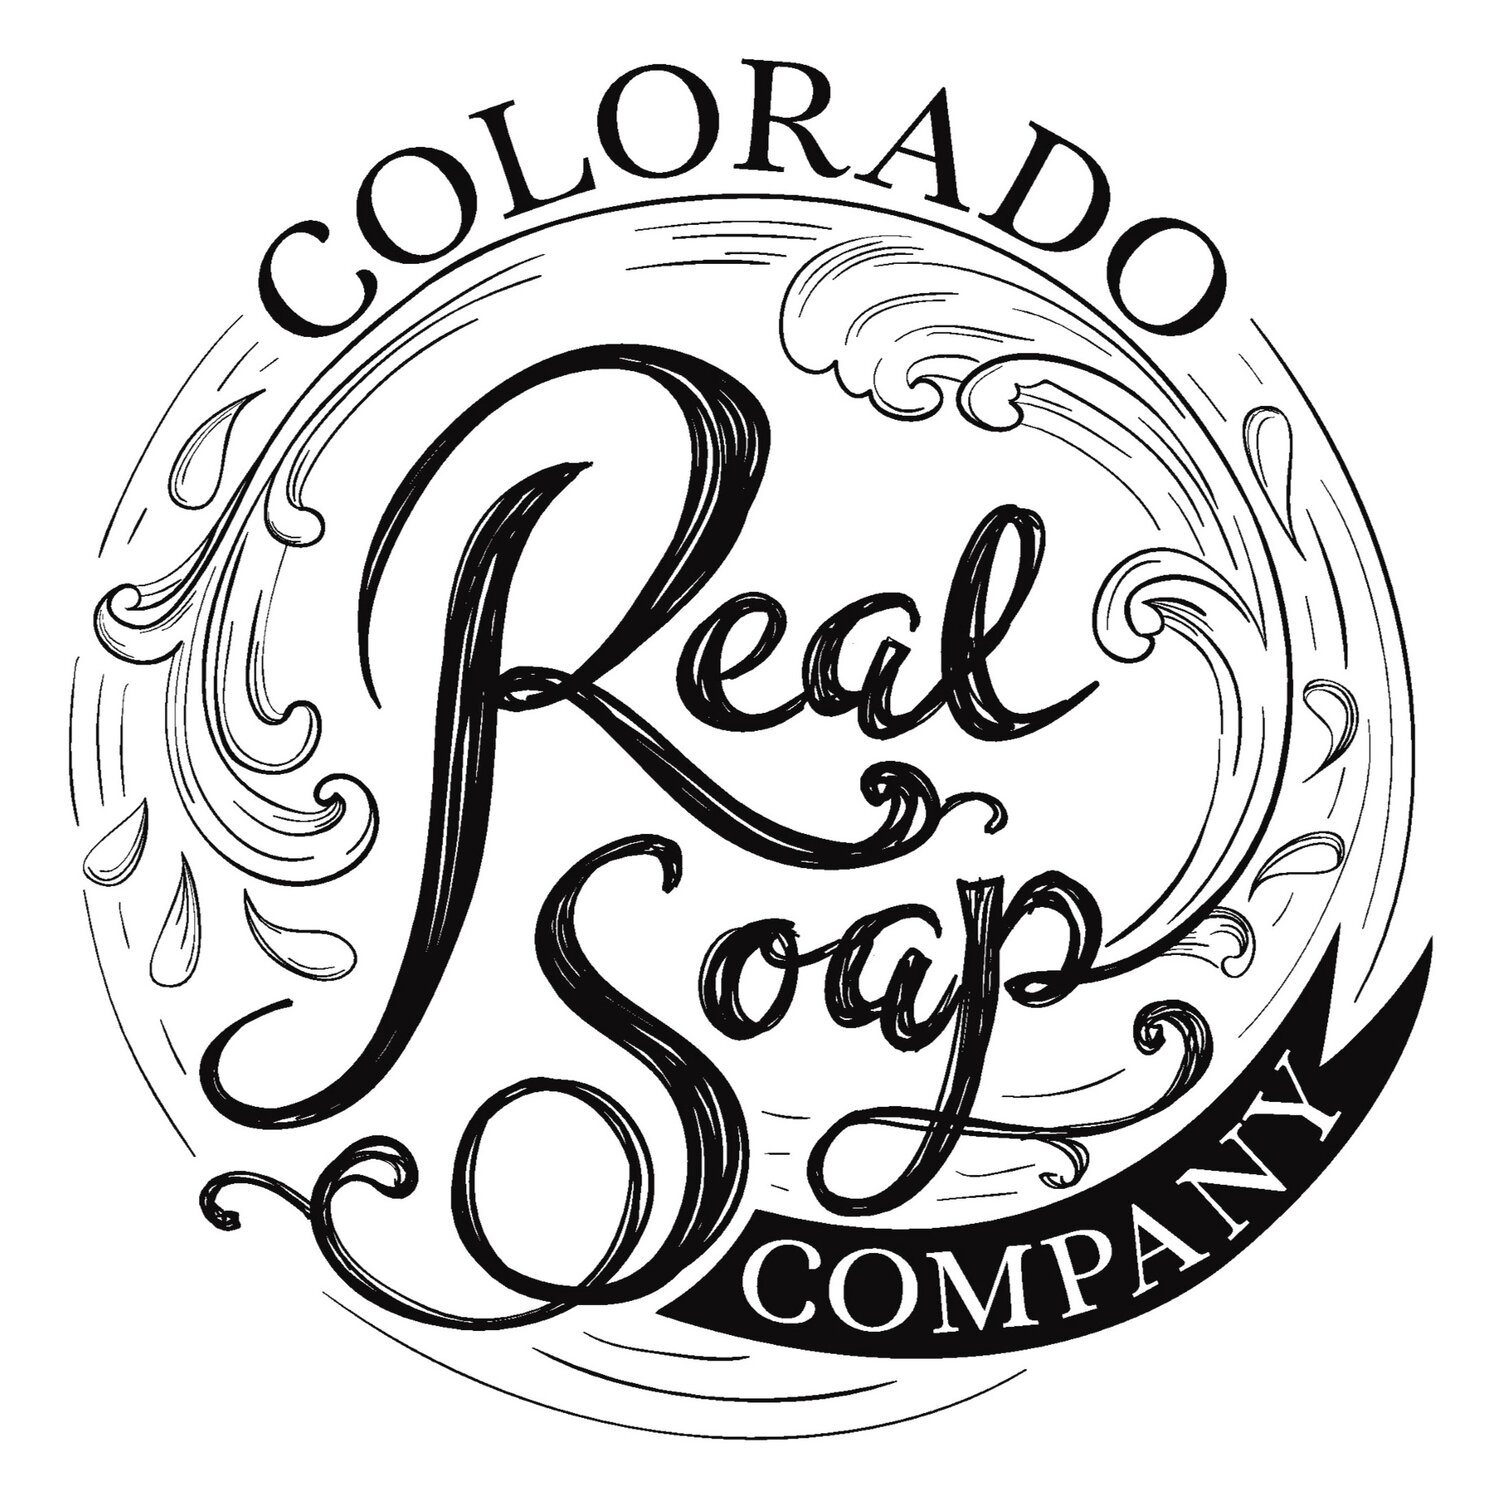 Colorado Real Soap Company